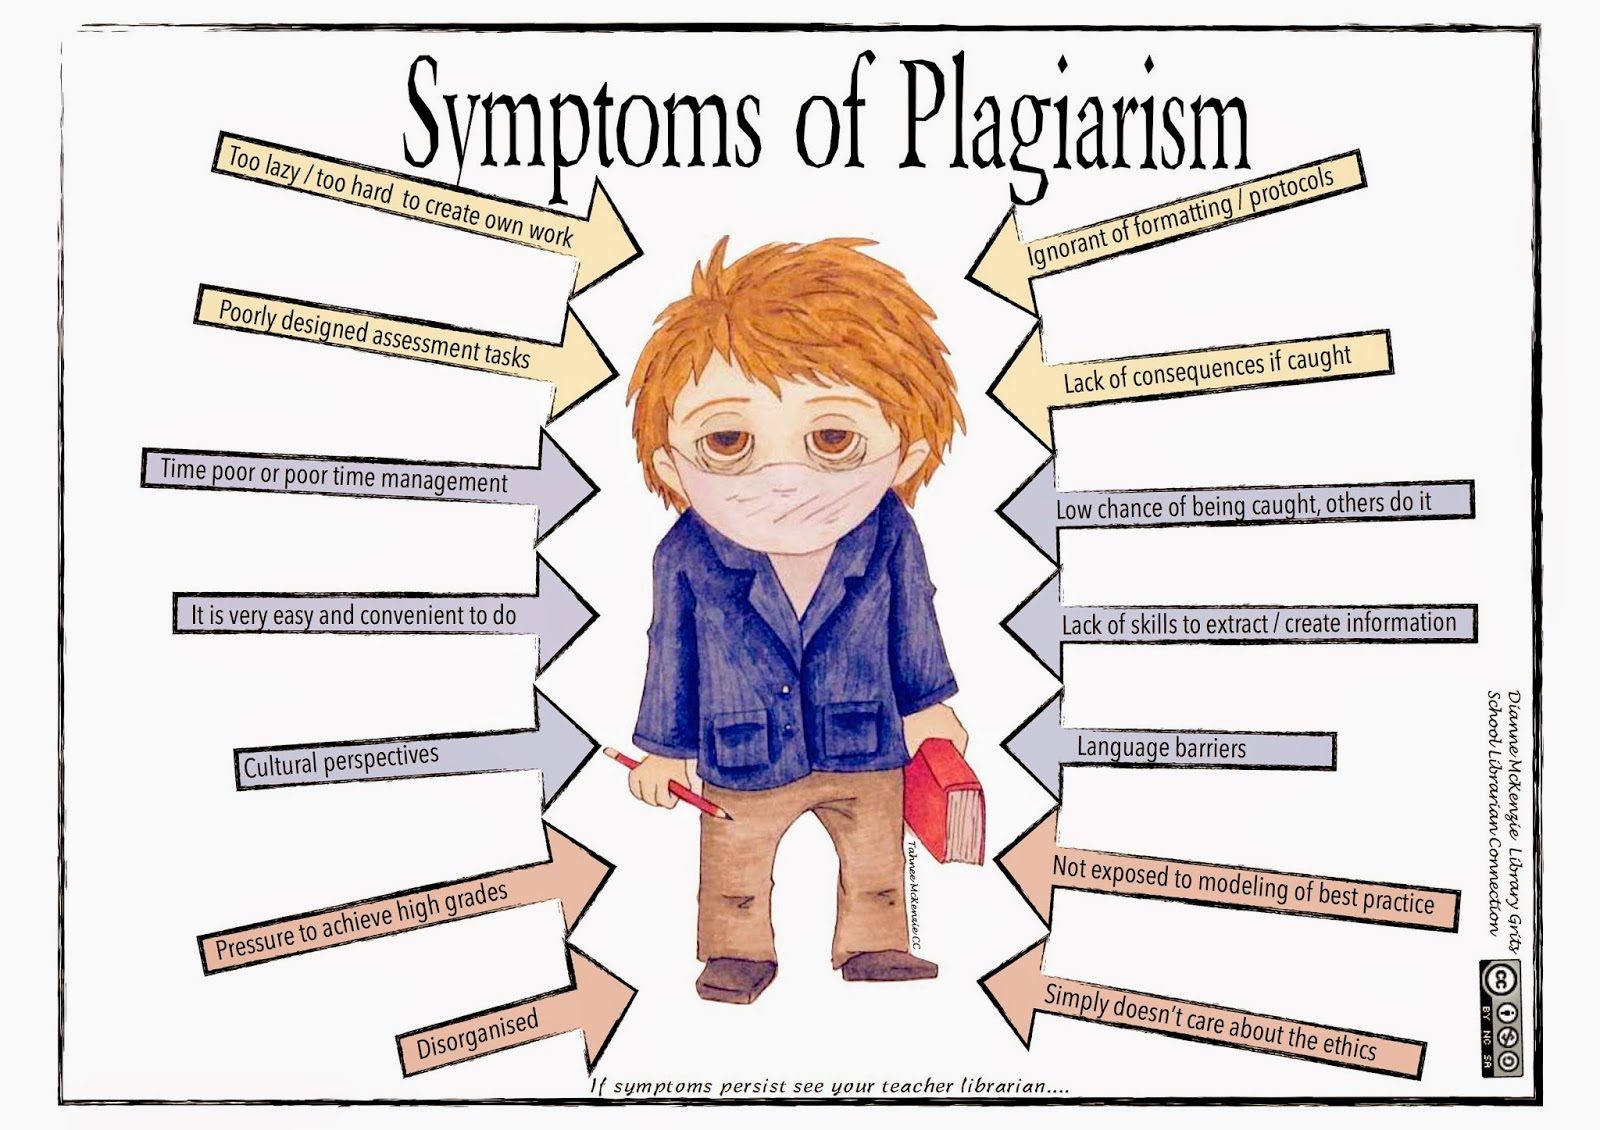 library grits symptoms of plagiarism tuesday 14 2015